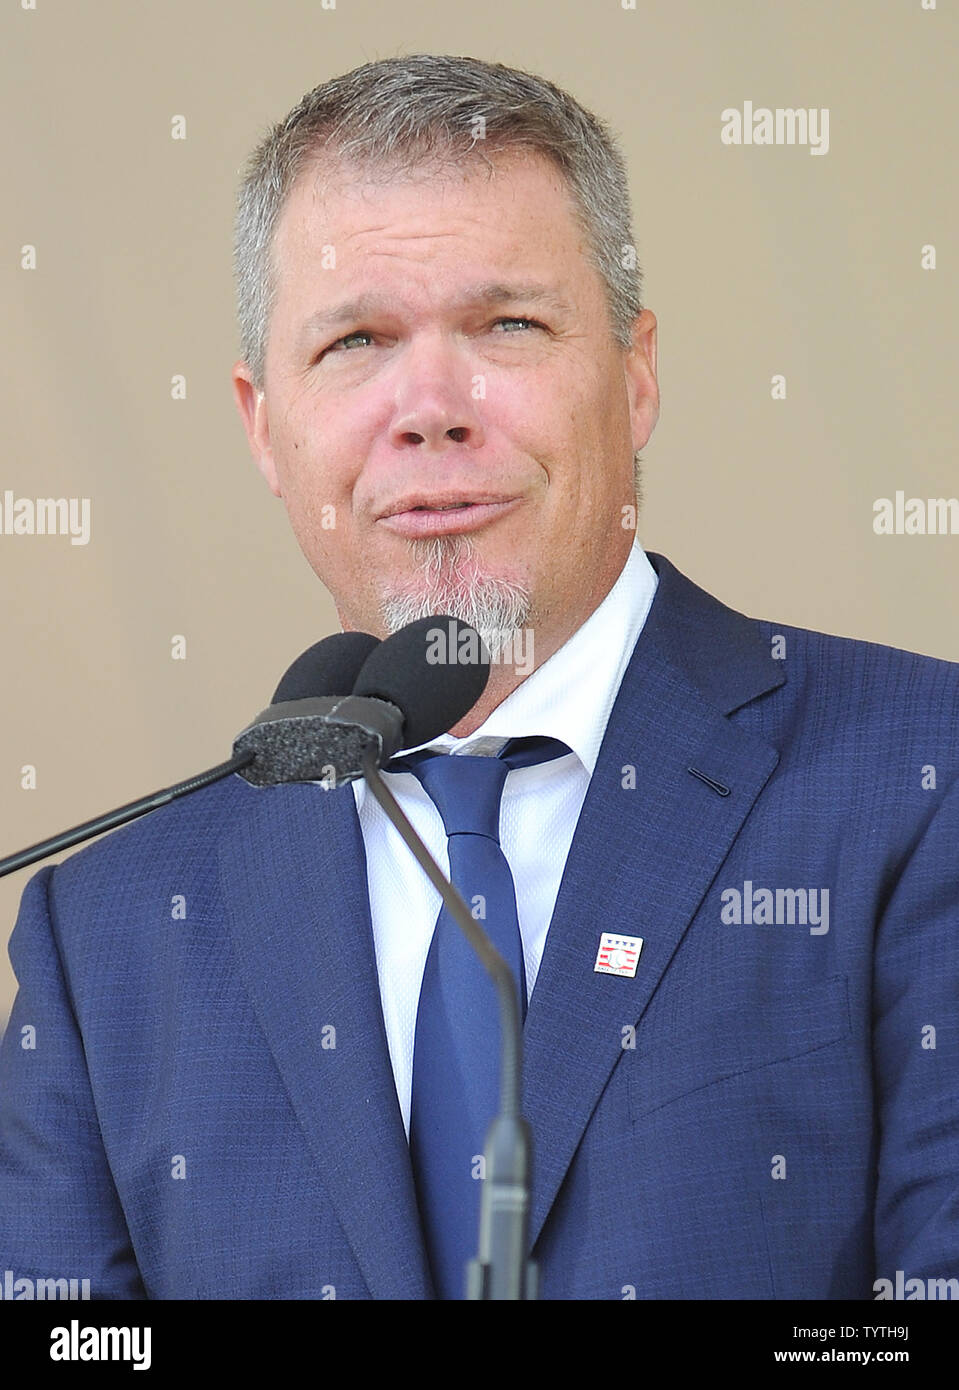 Atlanta Braves Chipper Jones delivers his Baseball Hall of Fame induction speech at the Clark Sports Center in Cooperstown, NY on July 29, 2018.  A record 60 Hall of Famers are scheduled to be in Central New York to honor Vladimir Guerrero, Trevor Hoffman, Chipper Jones, Jack Morris, Jim Thome and Alan Trammell at the National Baseball Hall of Fame and Museum during Hall of Fame Weekend on July 27-30.     Photo by George Napolitano/UPI - Stock Image